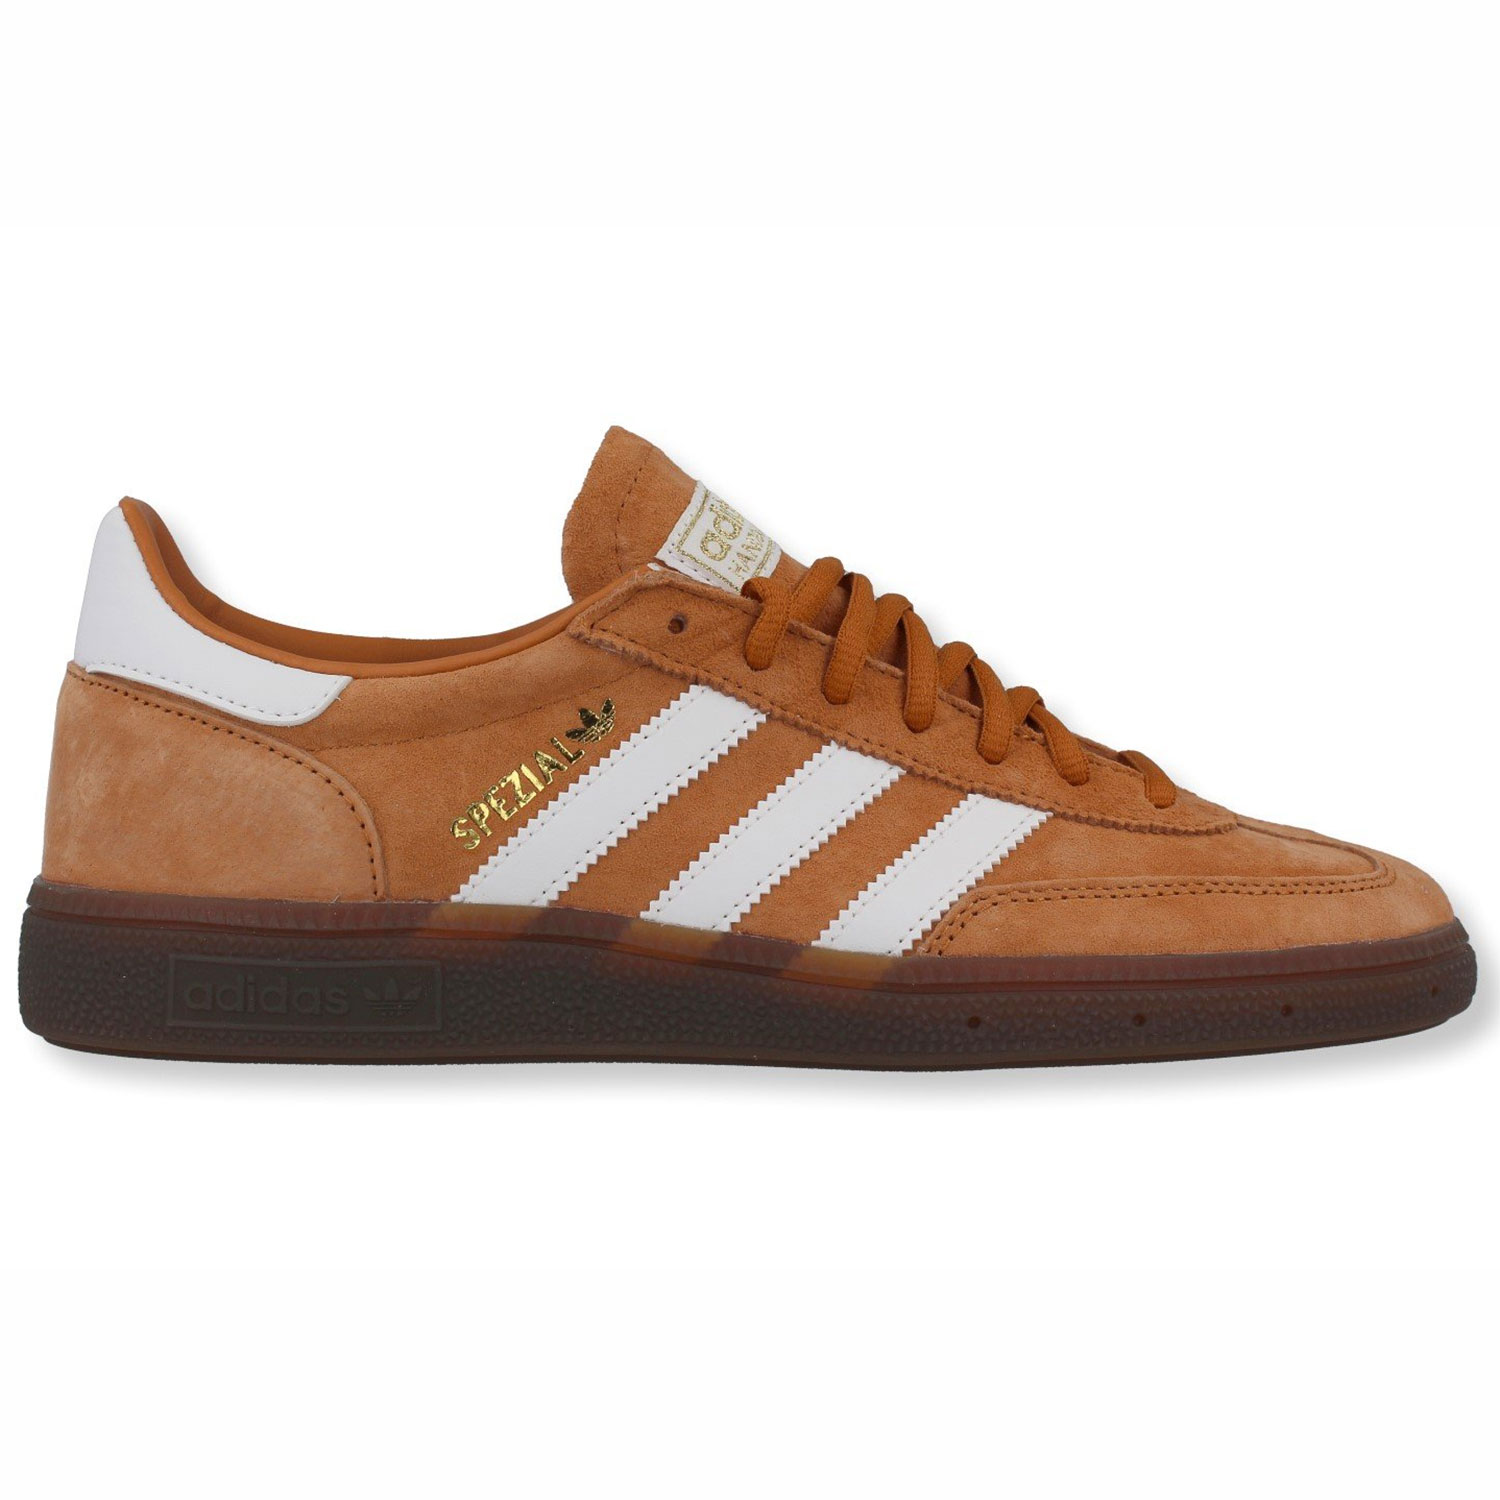 lower price with large discount lower price with Details zu adidas Originals Handball Spezial Herren Sneaker braun weiß  EE5730